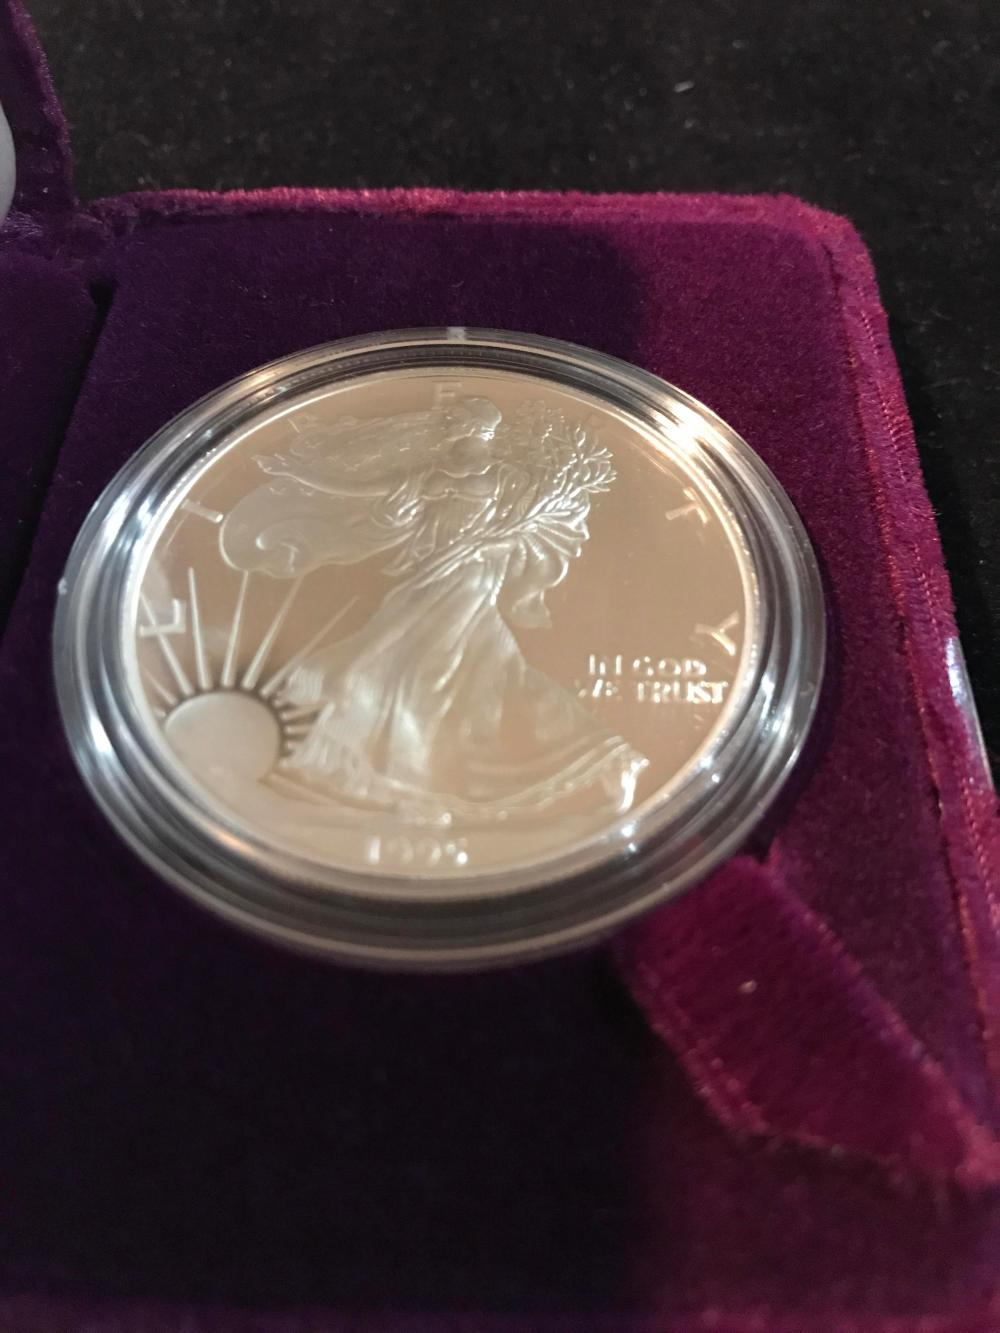 Lot 156: 1995 silver American eagle one dollar coin mint